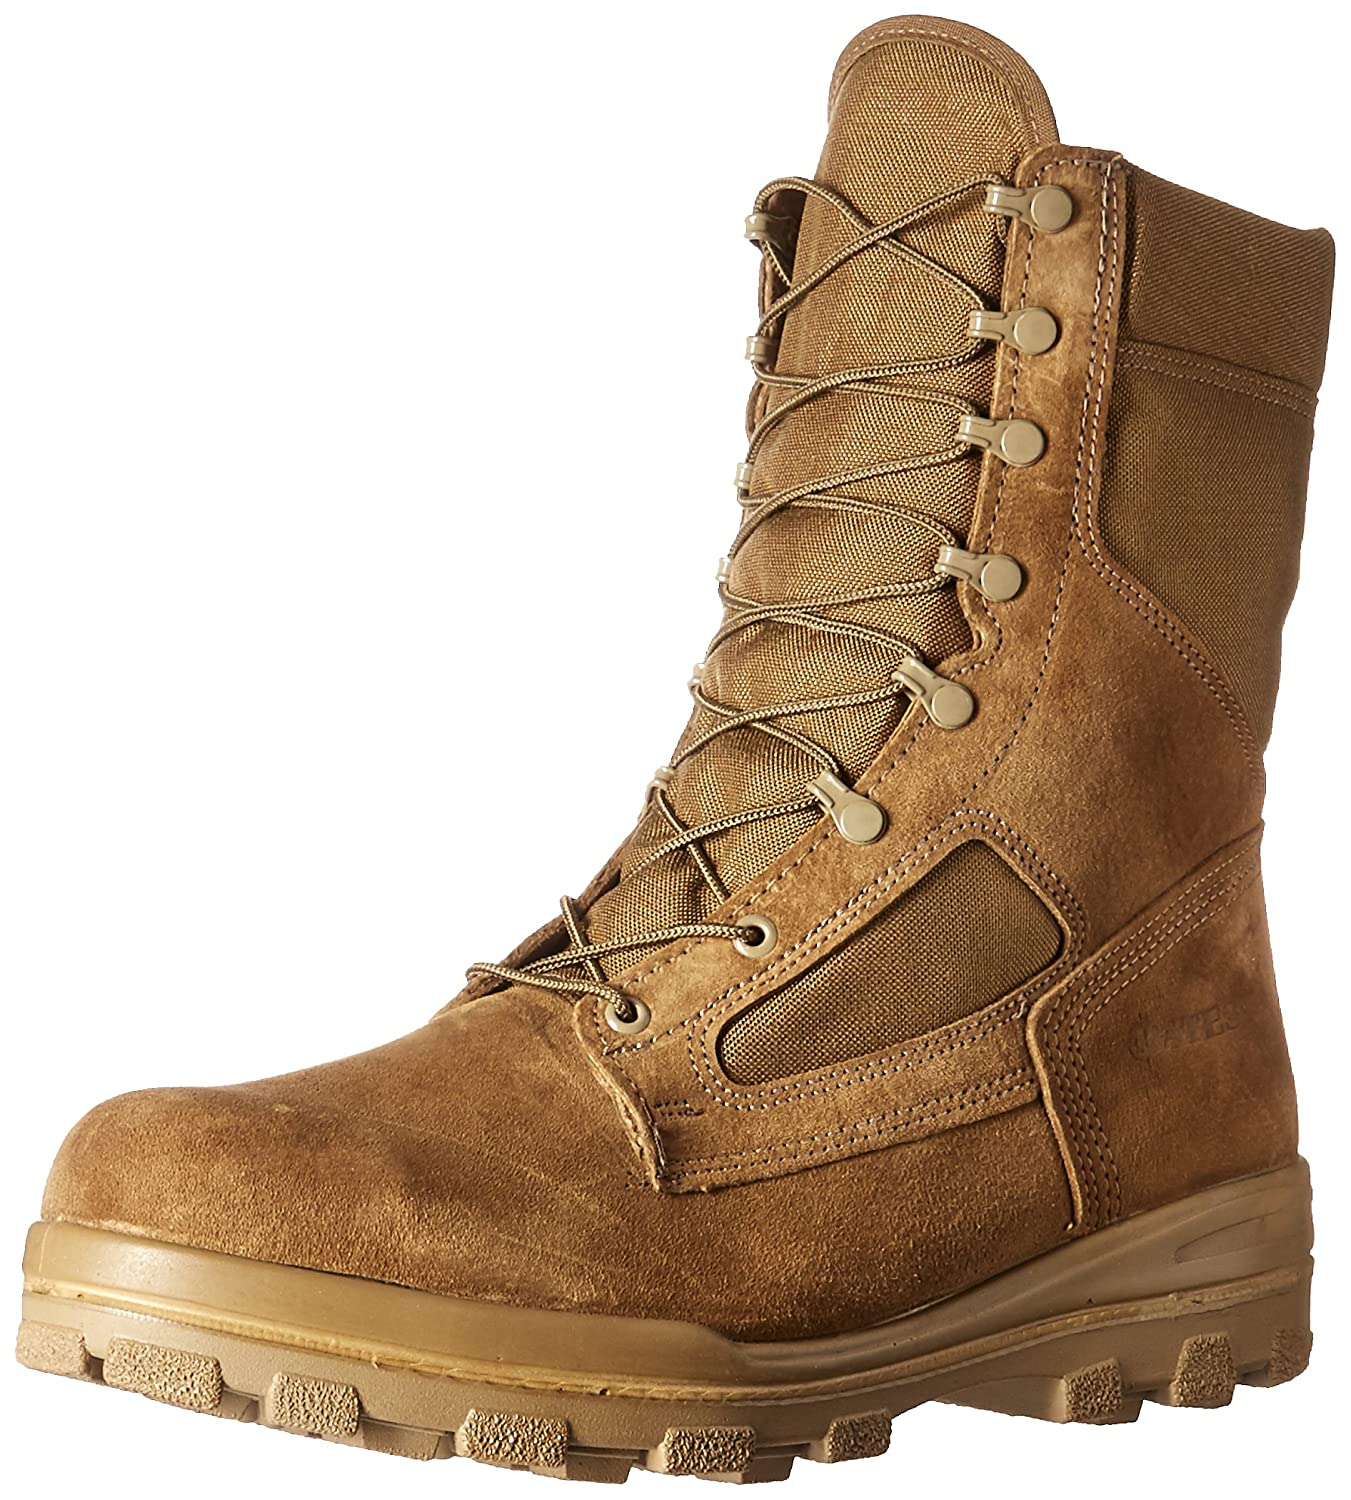 Bates Men's DuraShocks Steel Toe Military & Tactical Boot Bates Tactical Footwear E70701